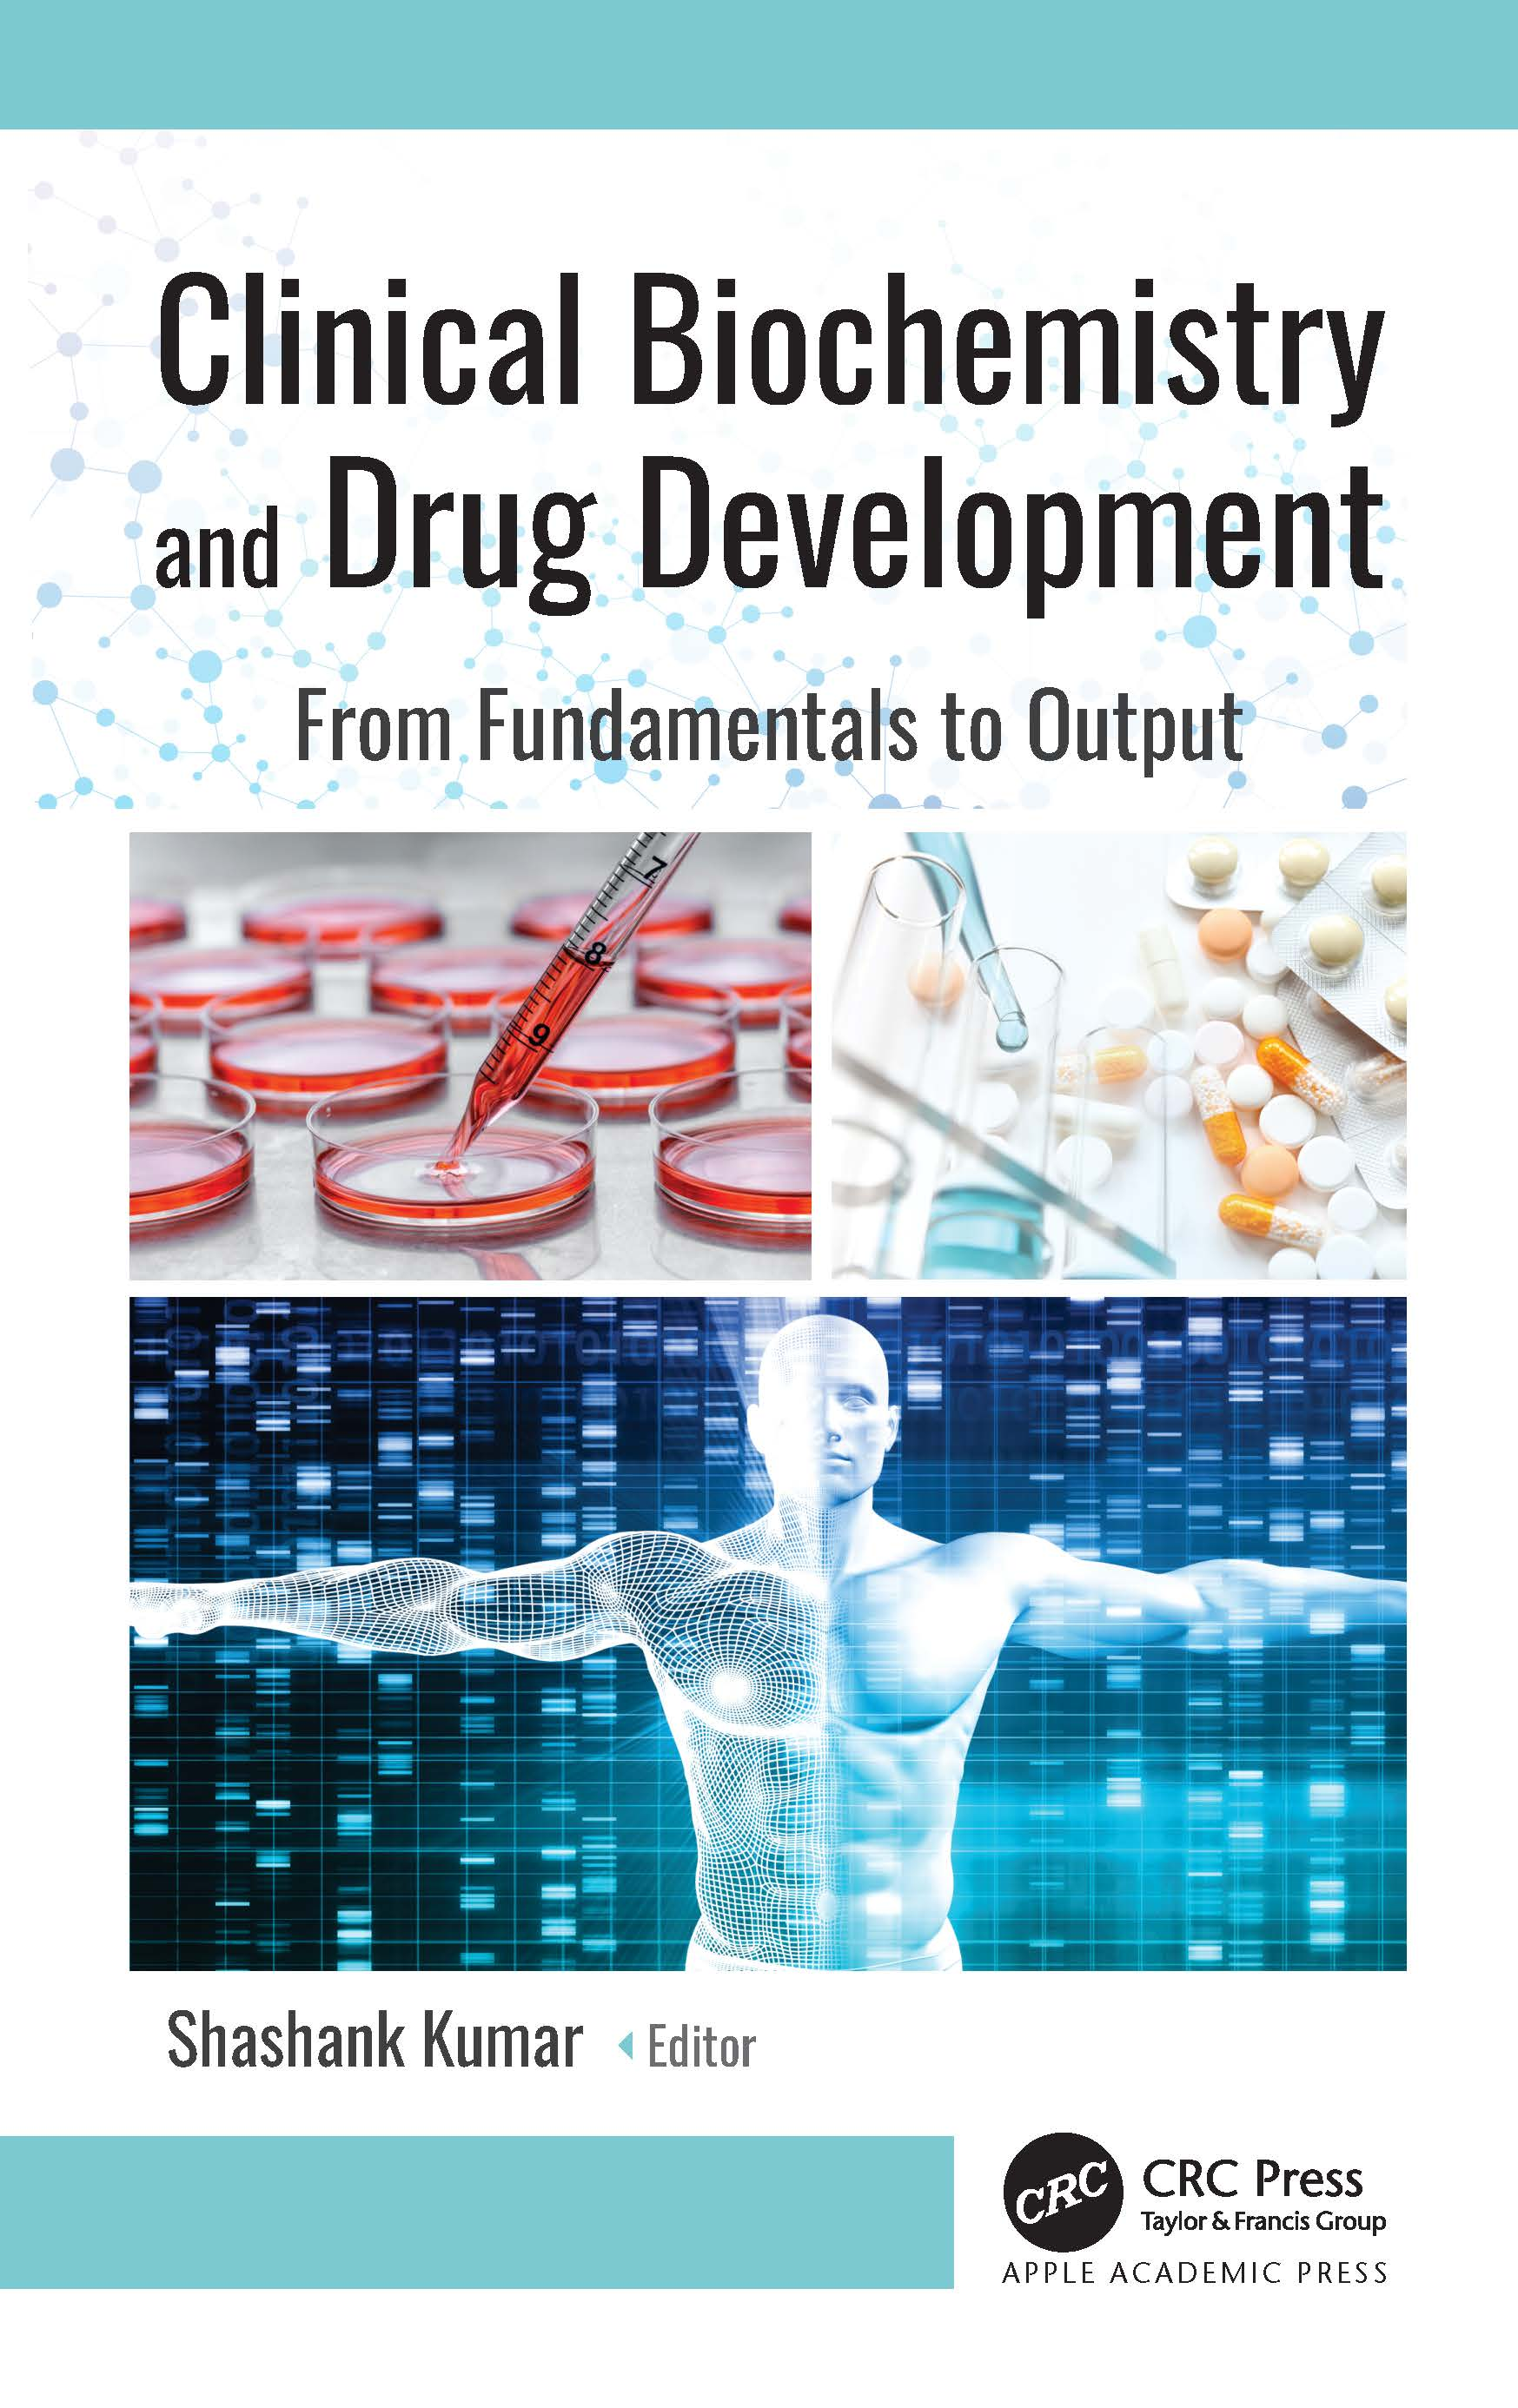 Clinical Biochemistry and Drug Development: From Fundamentals to Output book cover